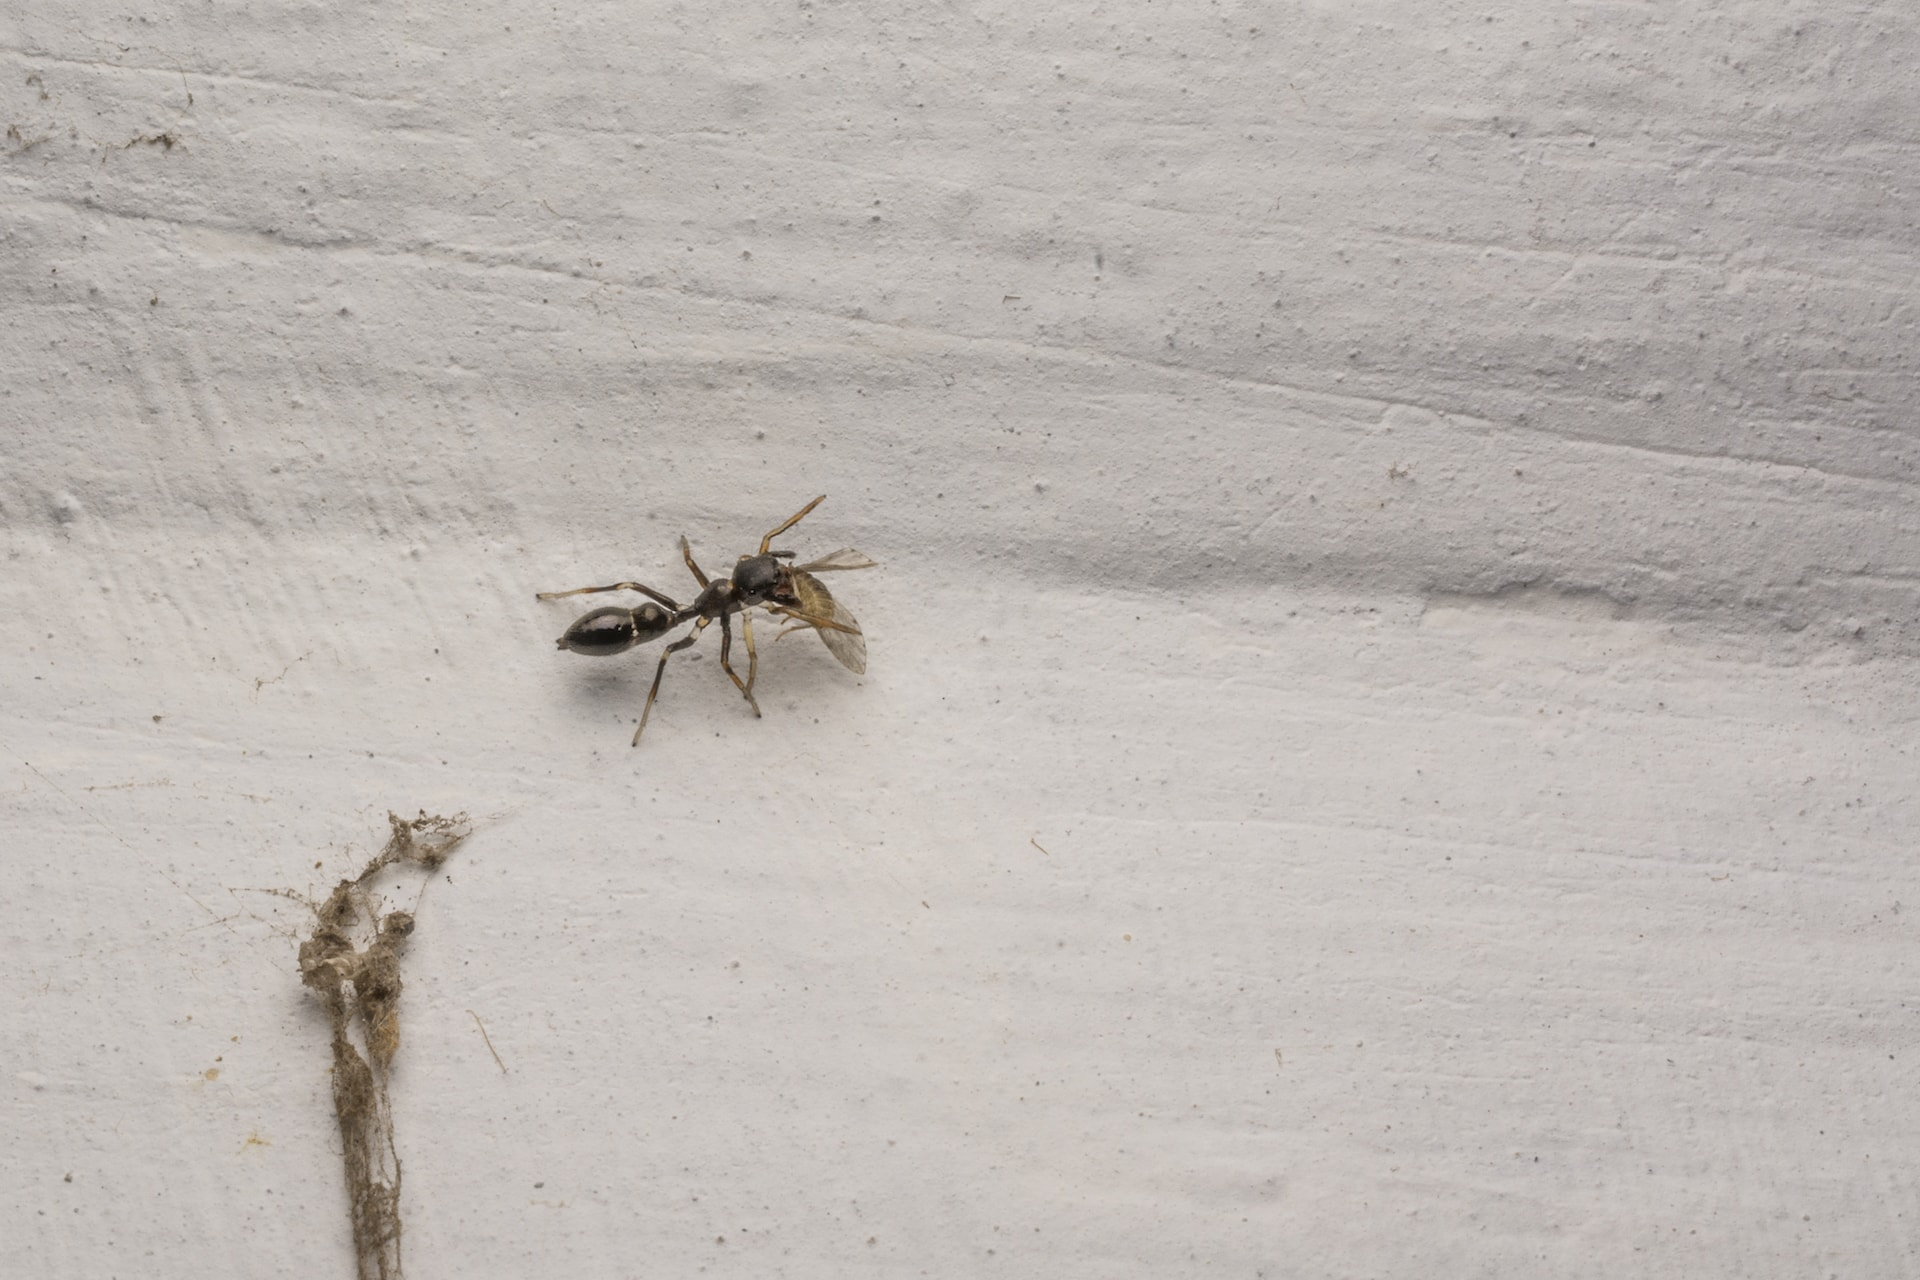 An ant-mimicking jumping spider devours an unsuspecting fly. Jumping spiders belonging to the genus Myrmarachne use an ingenious mechanism of imitating ants to protect themselves.